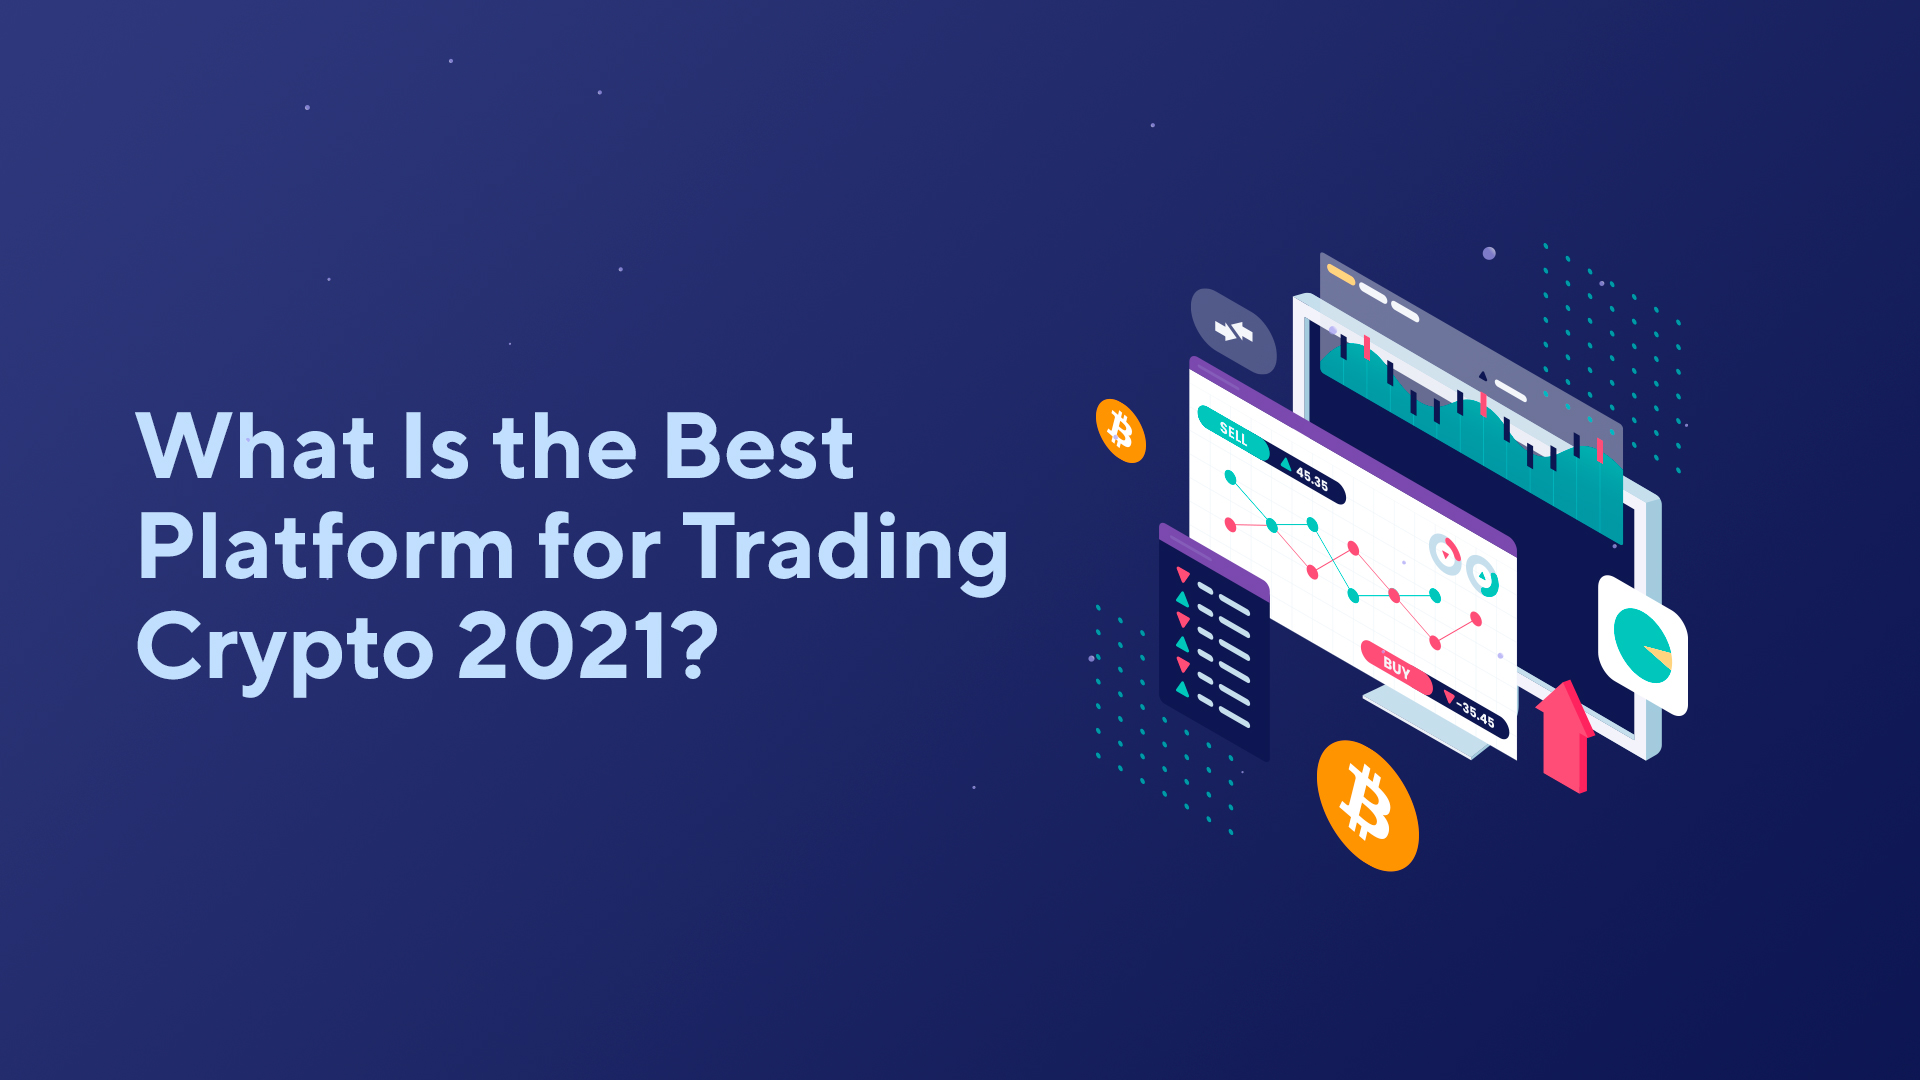 What Is the Best Platform for Trading Crypto 2021?